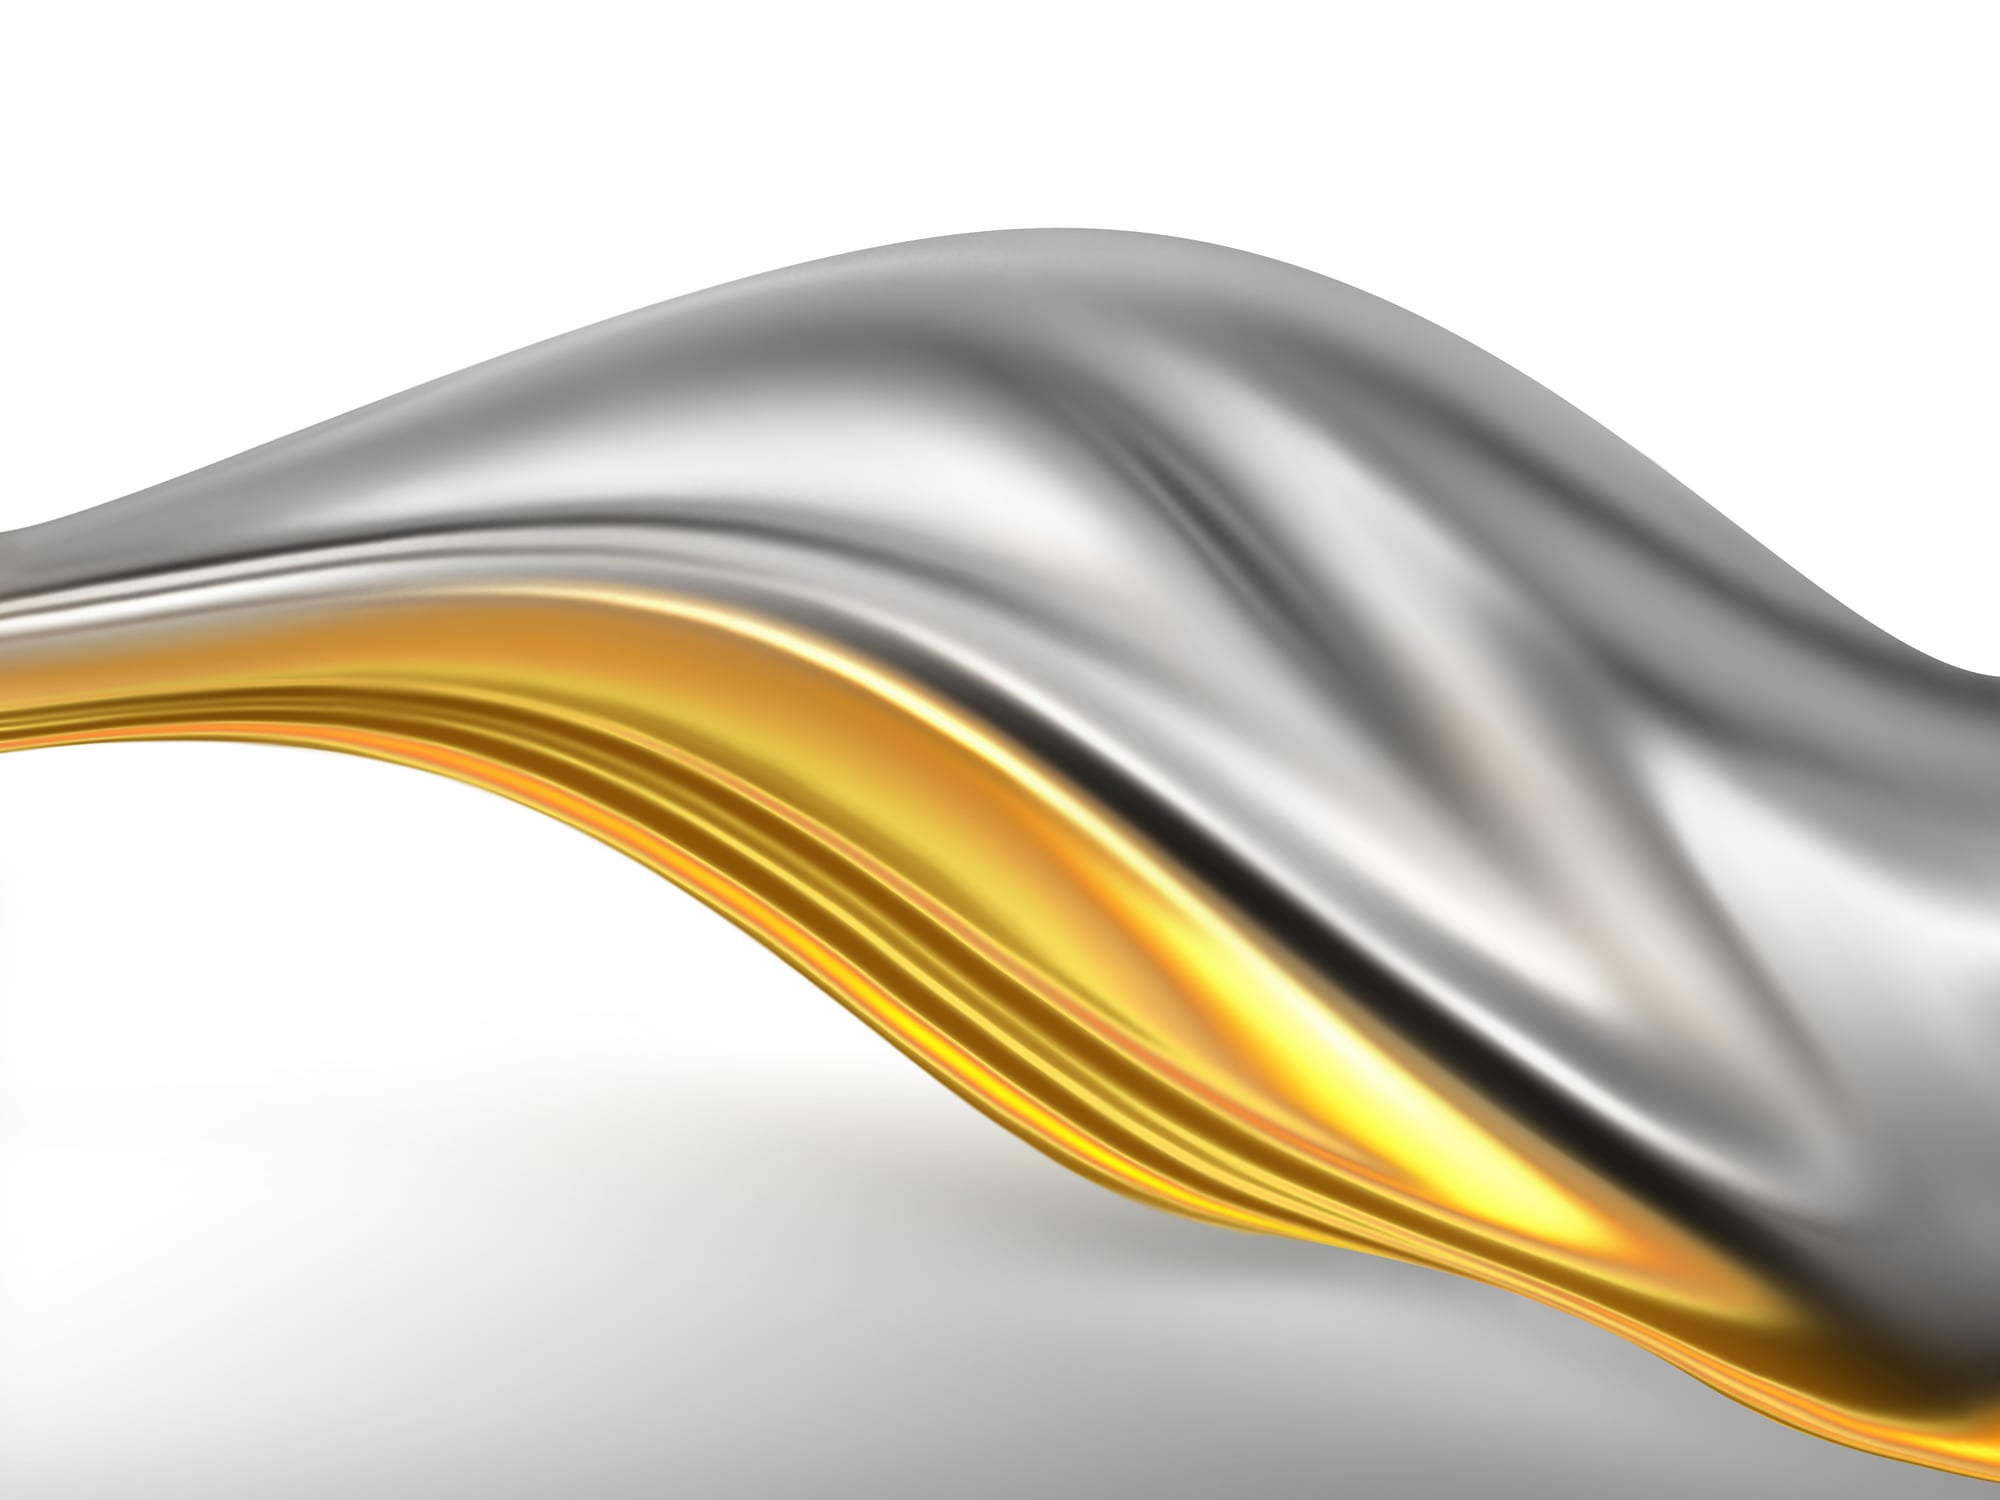 Wave Of Gold And Silver Silk On A Light Background